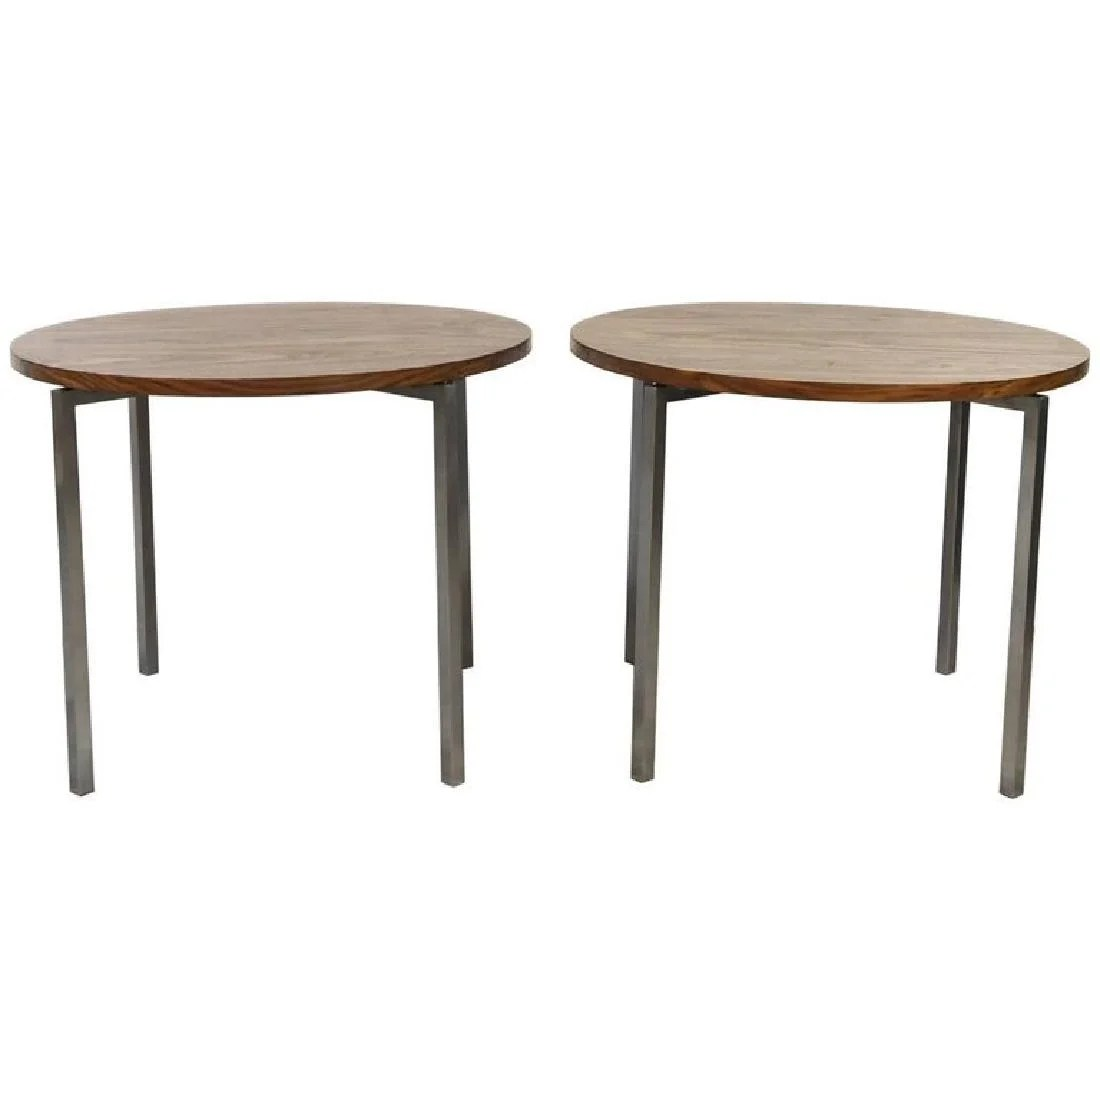 Tables Knoll Florence Knoll Wooden Top Circular End Tables On Liveauctioneers